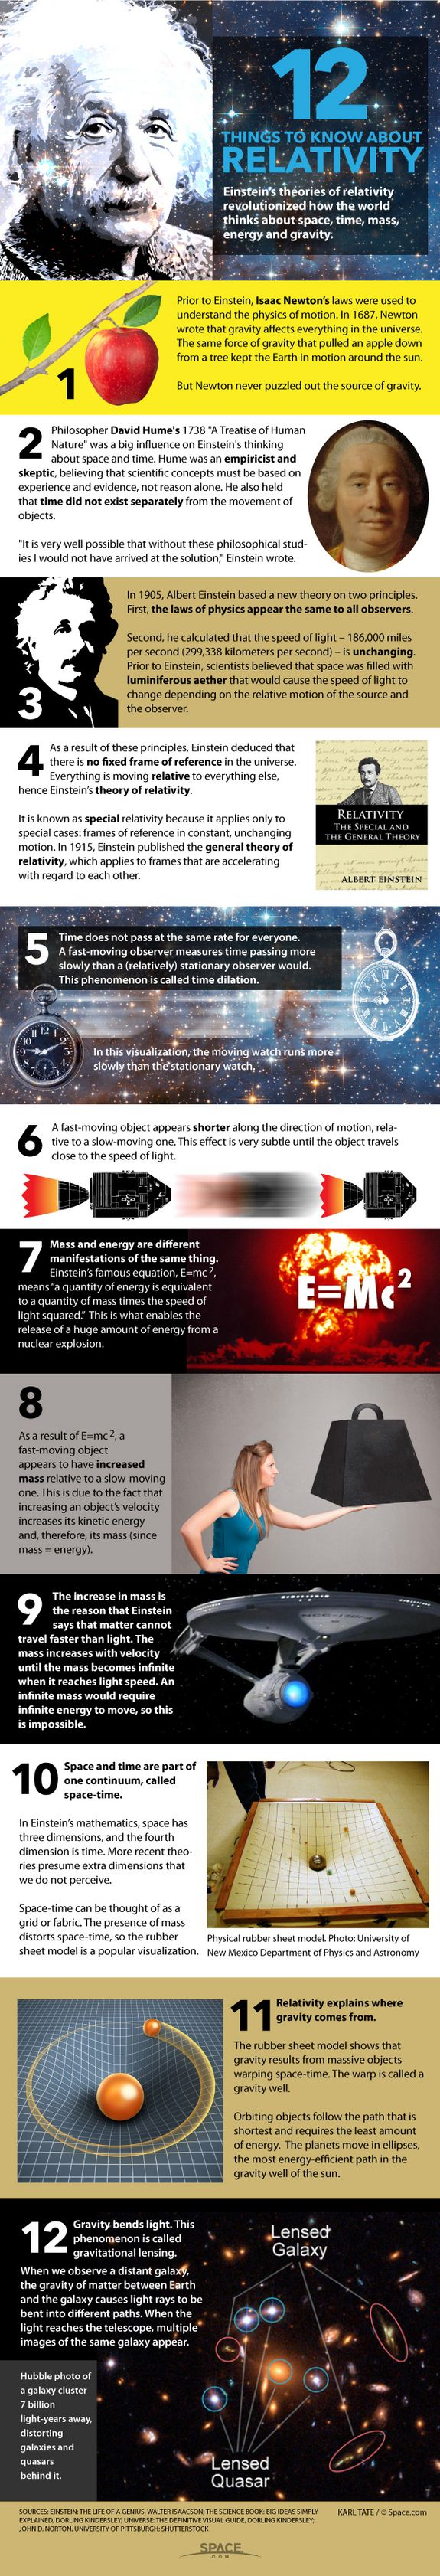 Einstein's Theory of Relativity Explained (Infographic) -  By Karl Tate, Infographics Artist